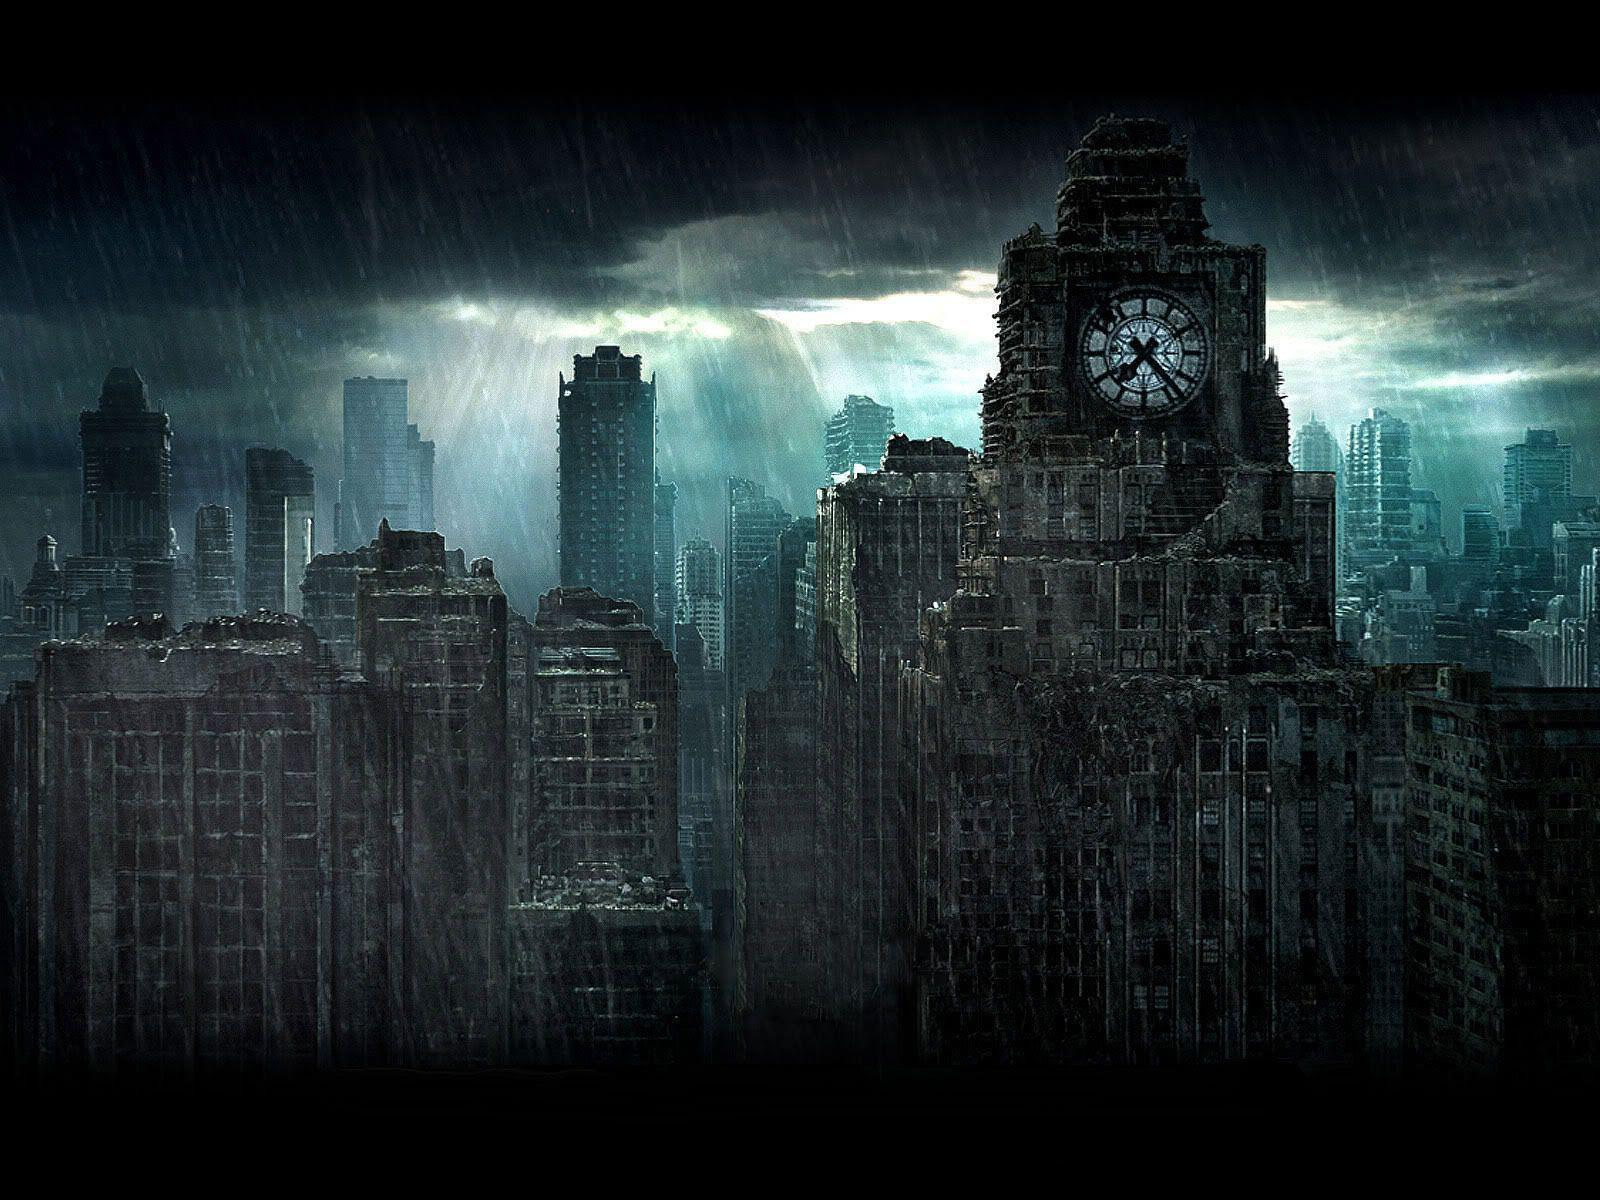 Gotham City Background Wallpaper 12043 High Resolution | HD ...